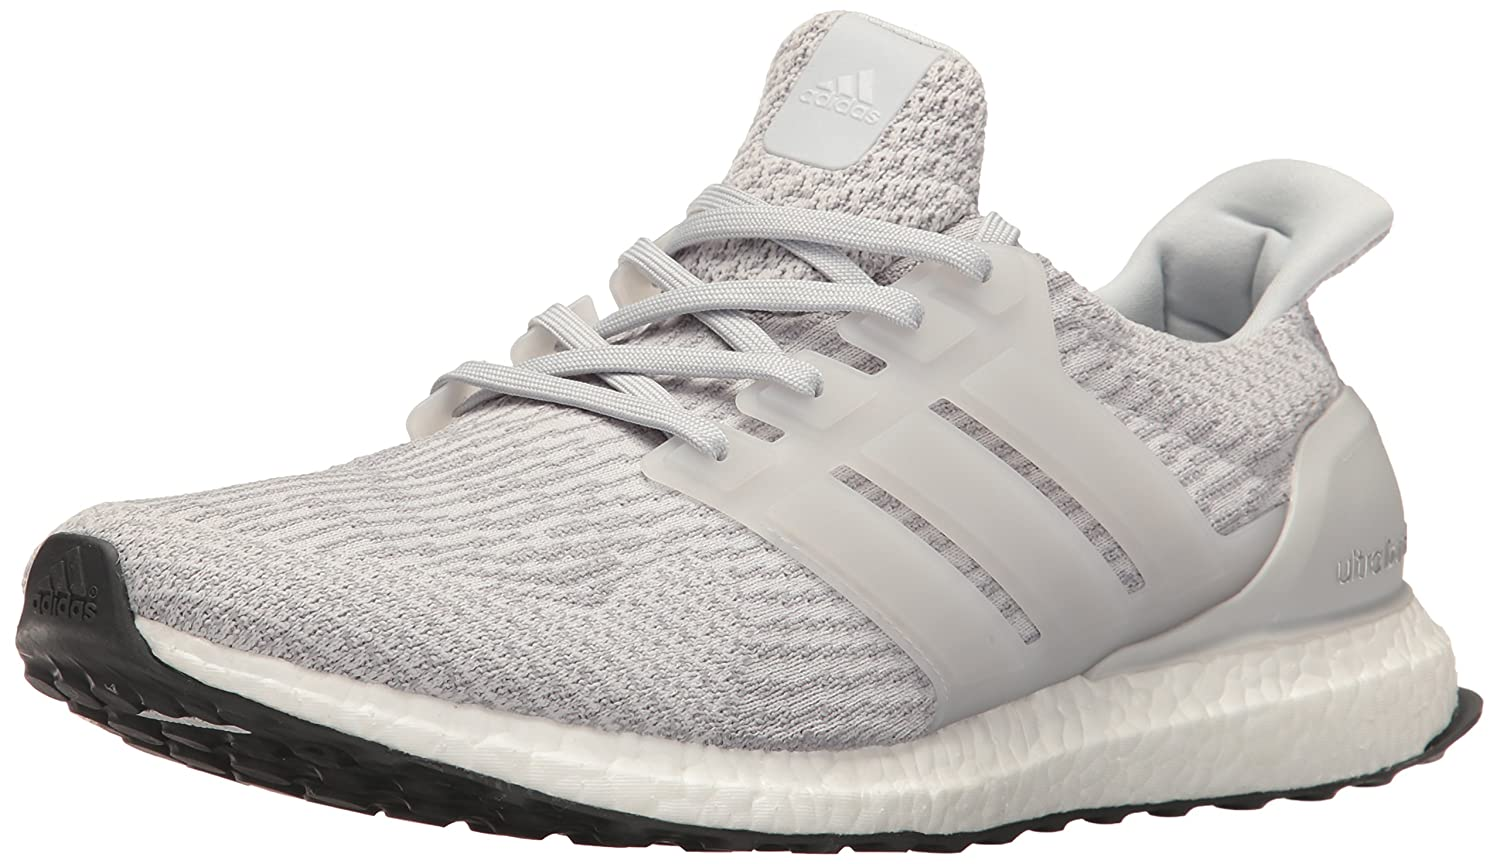 adidas Performance Men's Ultra Boost M Running Shoe B01H643YX2 8 D(M) US|Clear/Grey/Clear/Grey/Mid Grey